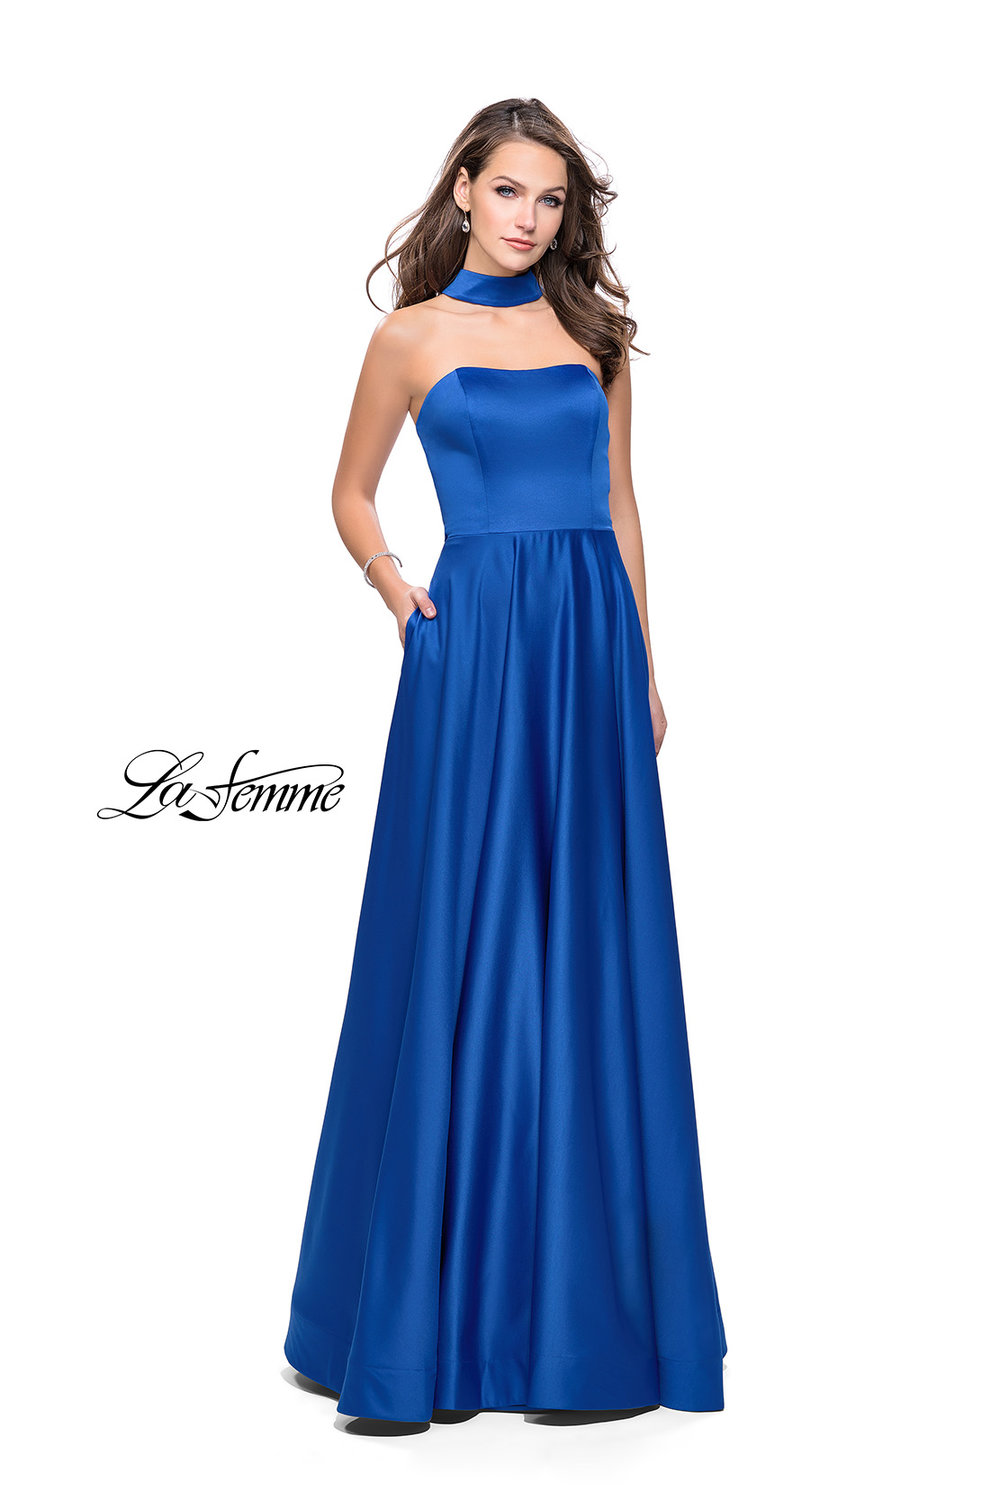 25680_RoyalBlue_F.jpg